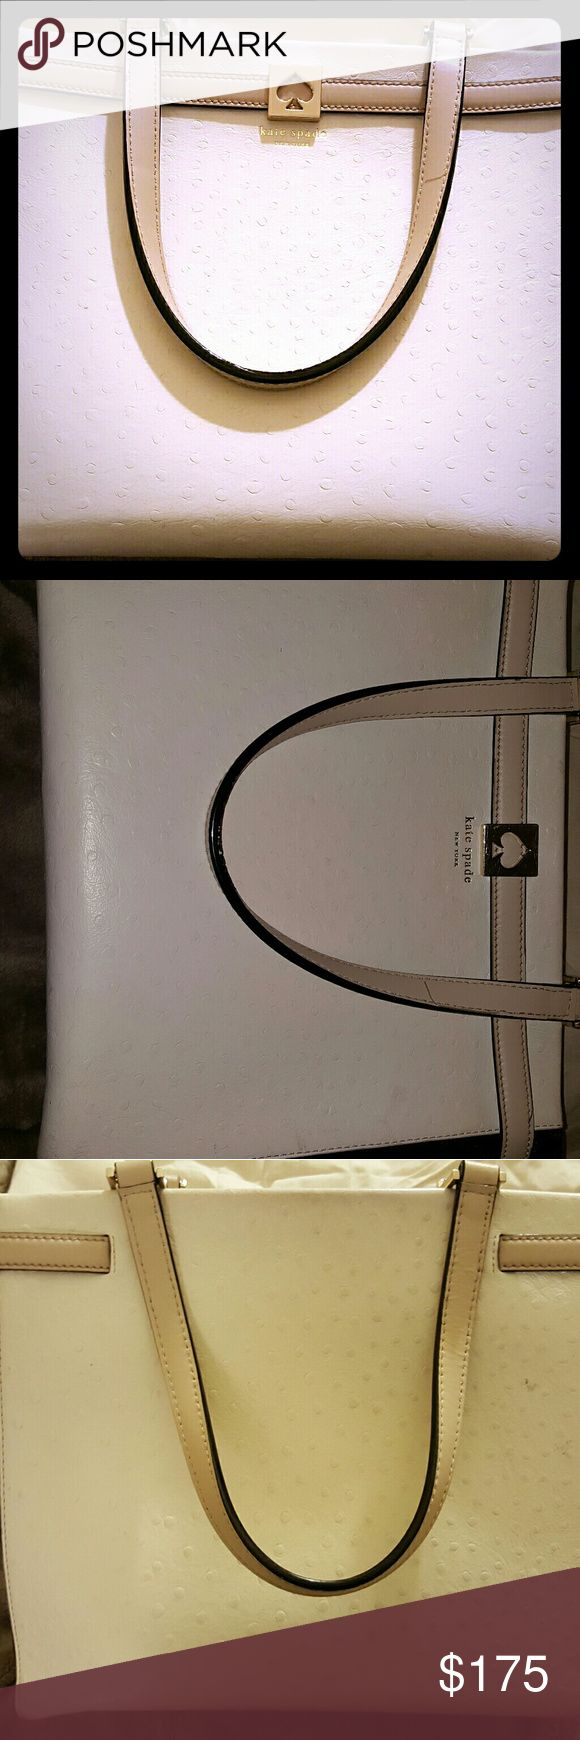 Kate Spate  handbag Black and white with nude straps. Beautiful bag, used slighty as seen in pictures kate spade Bags Satchels